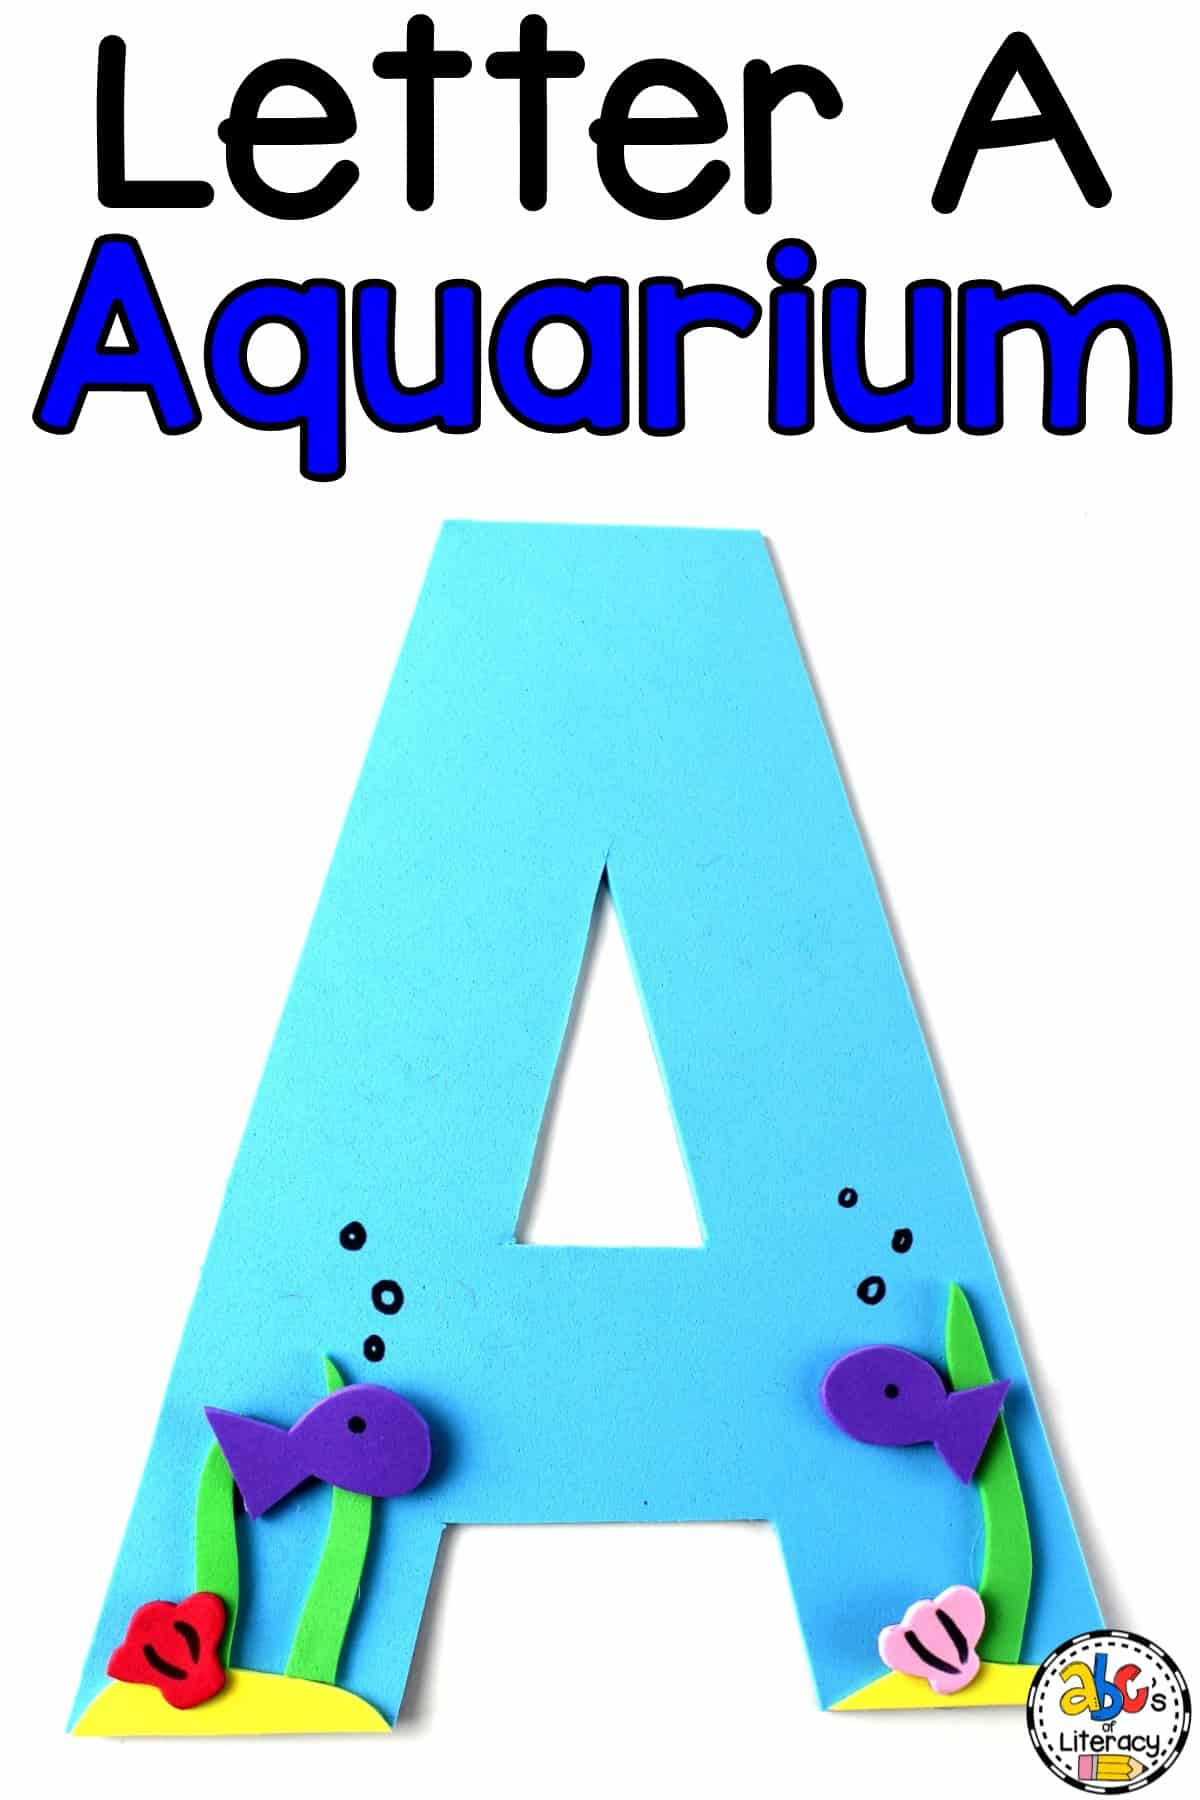 Letter A Craft, Aquarium Craft, Letter of the Week Craft, Letter A Aquarium Craft